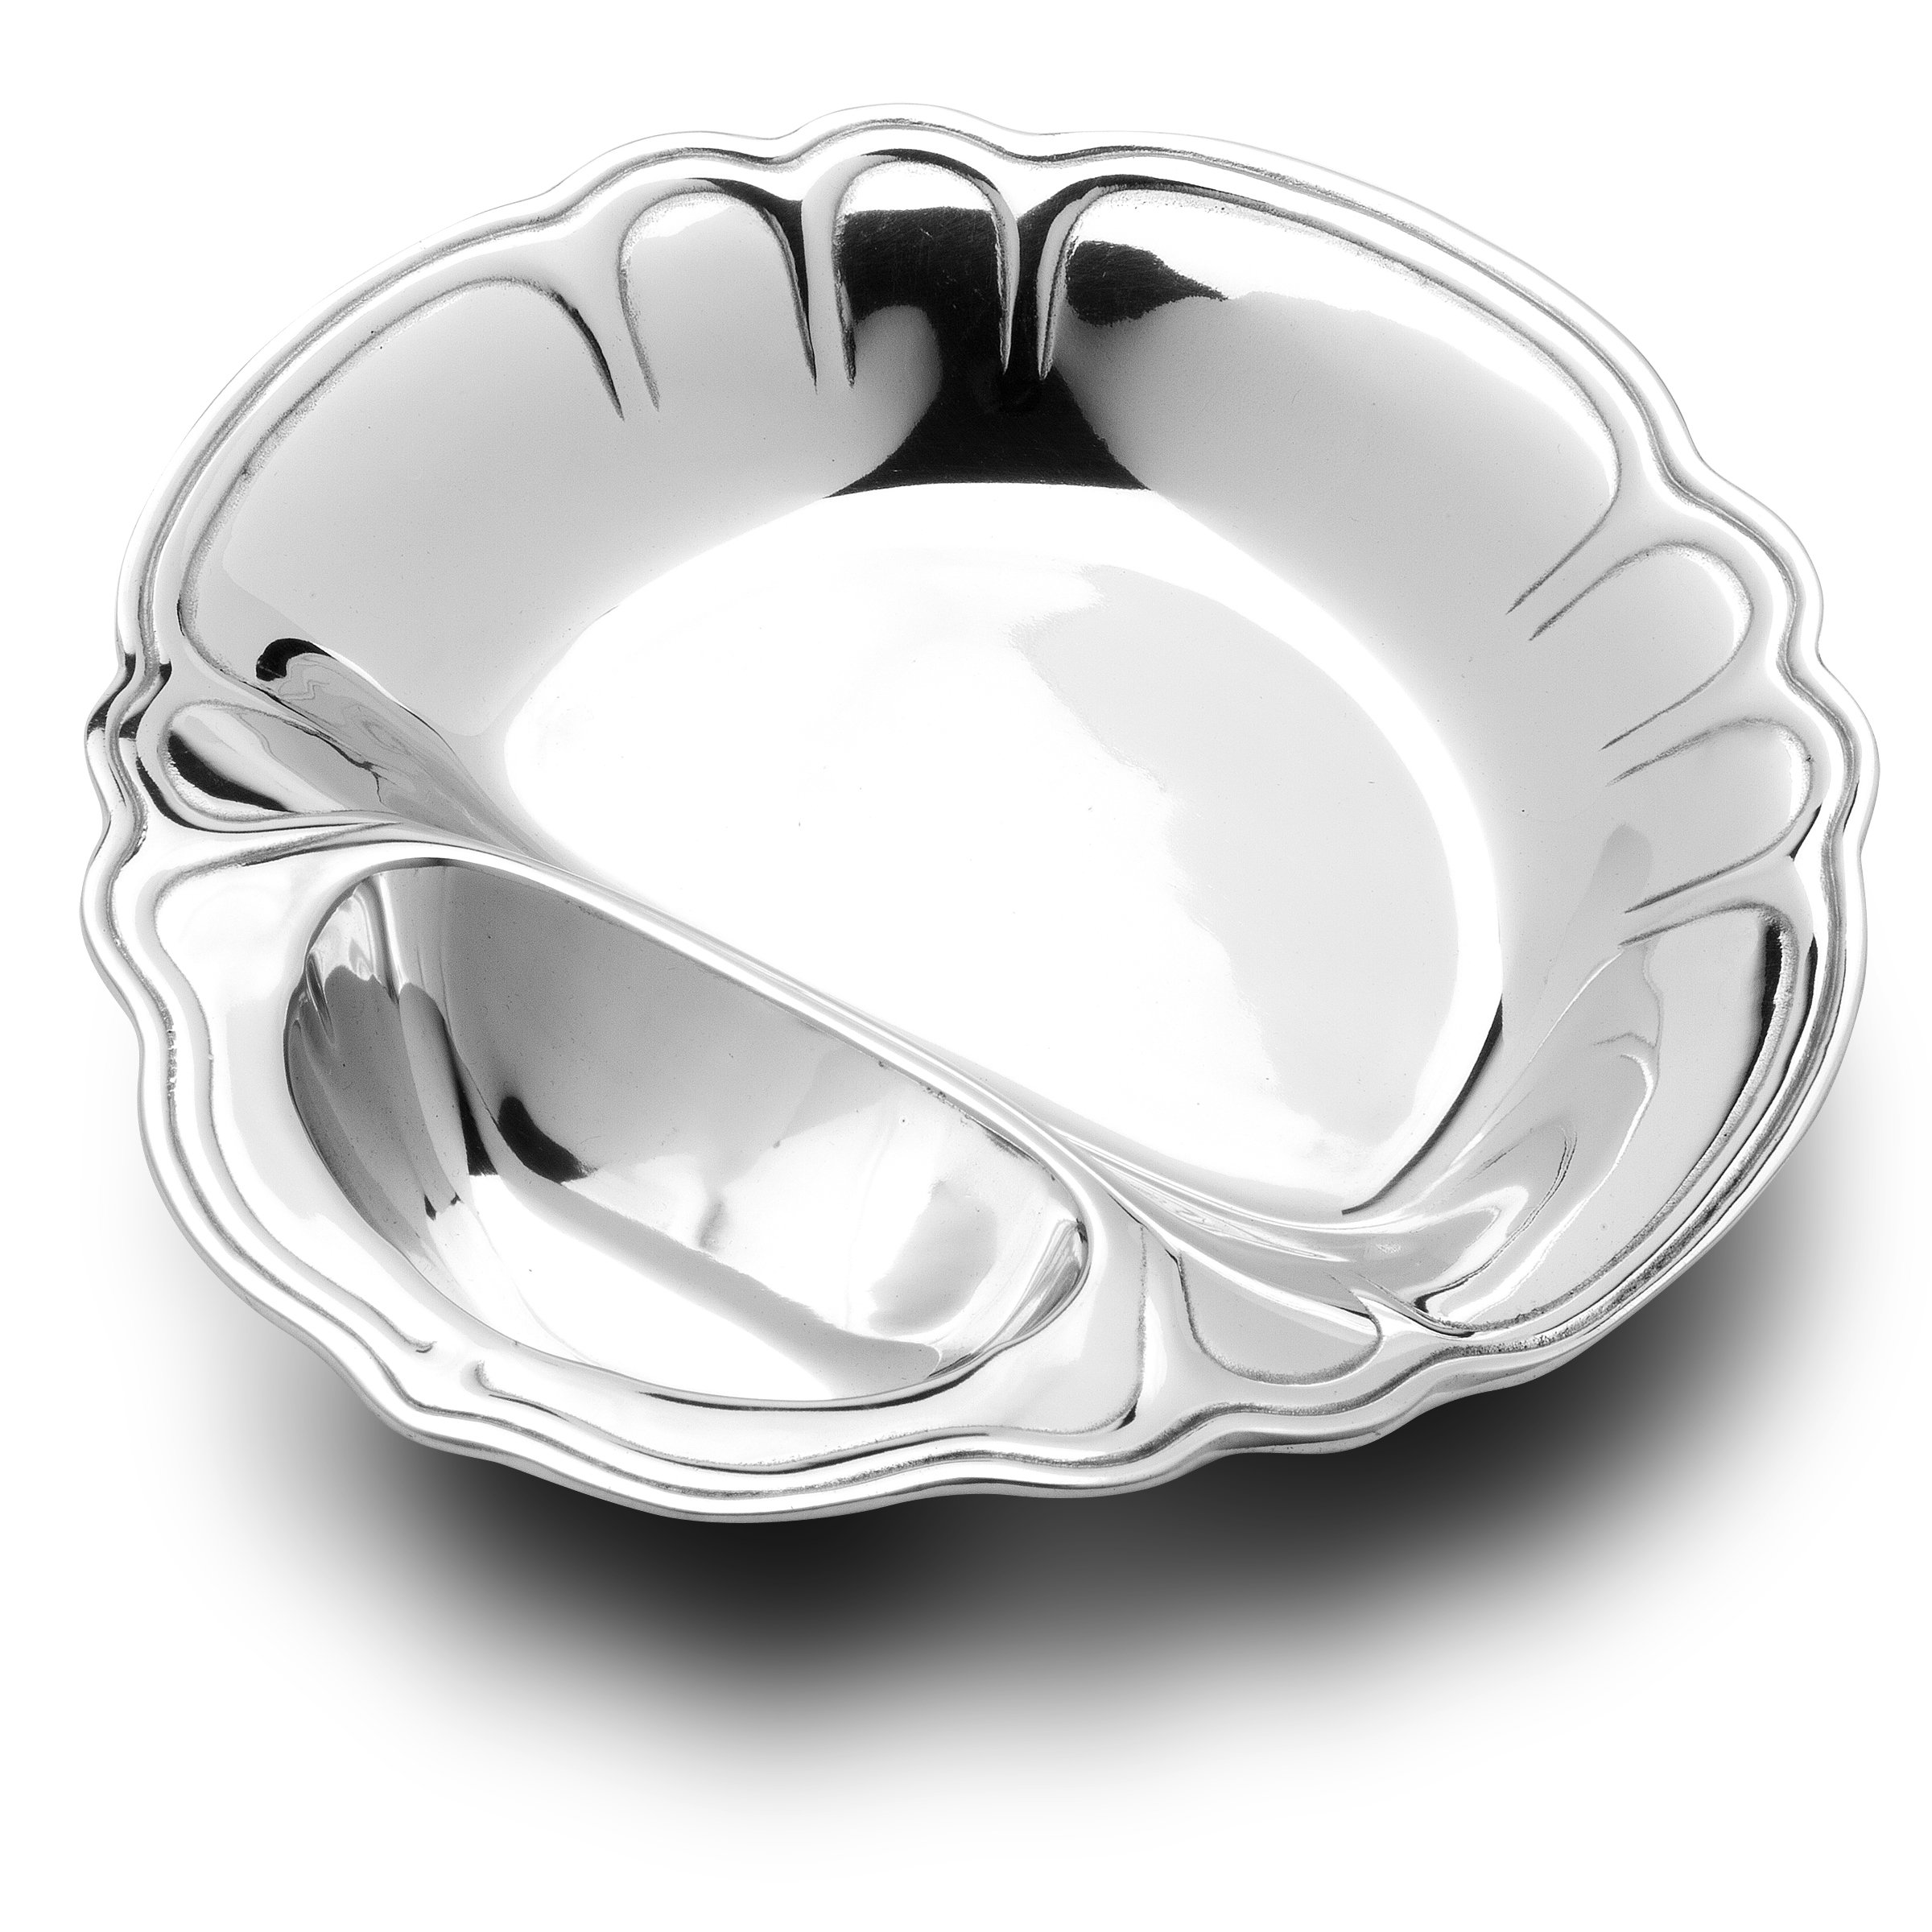 Wilton Armetale Stafford Chip and Dip Server, 13-Inch-by-12-Inch